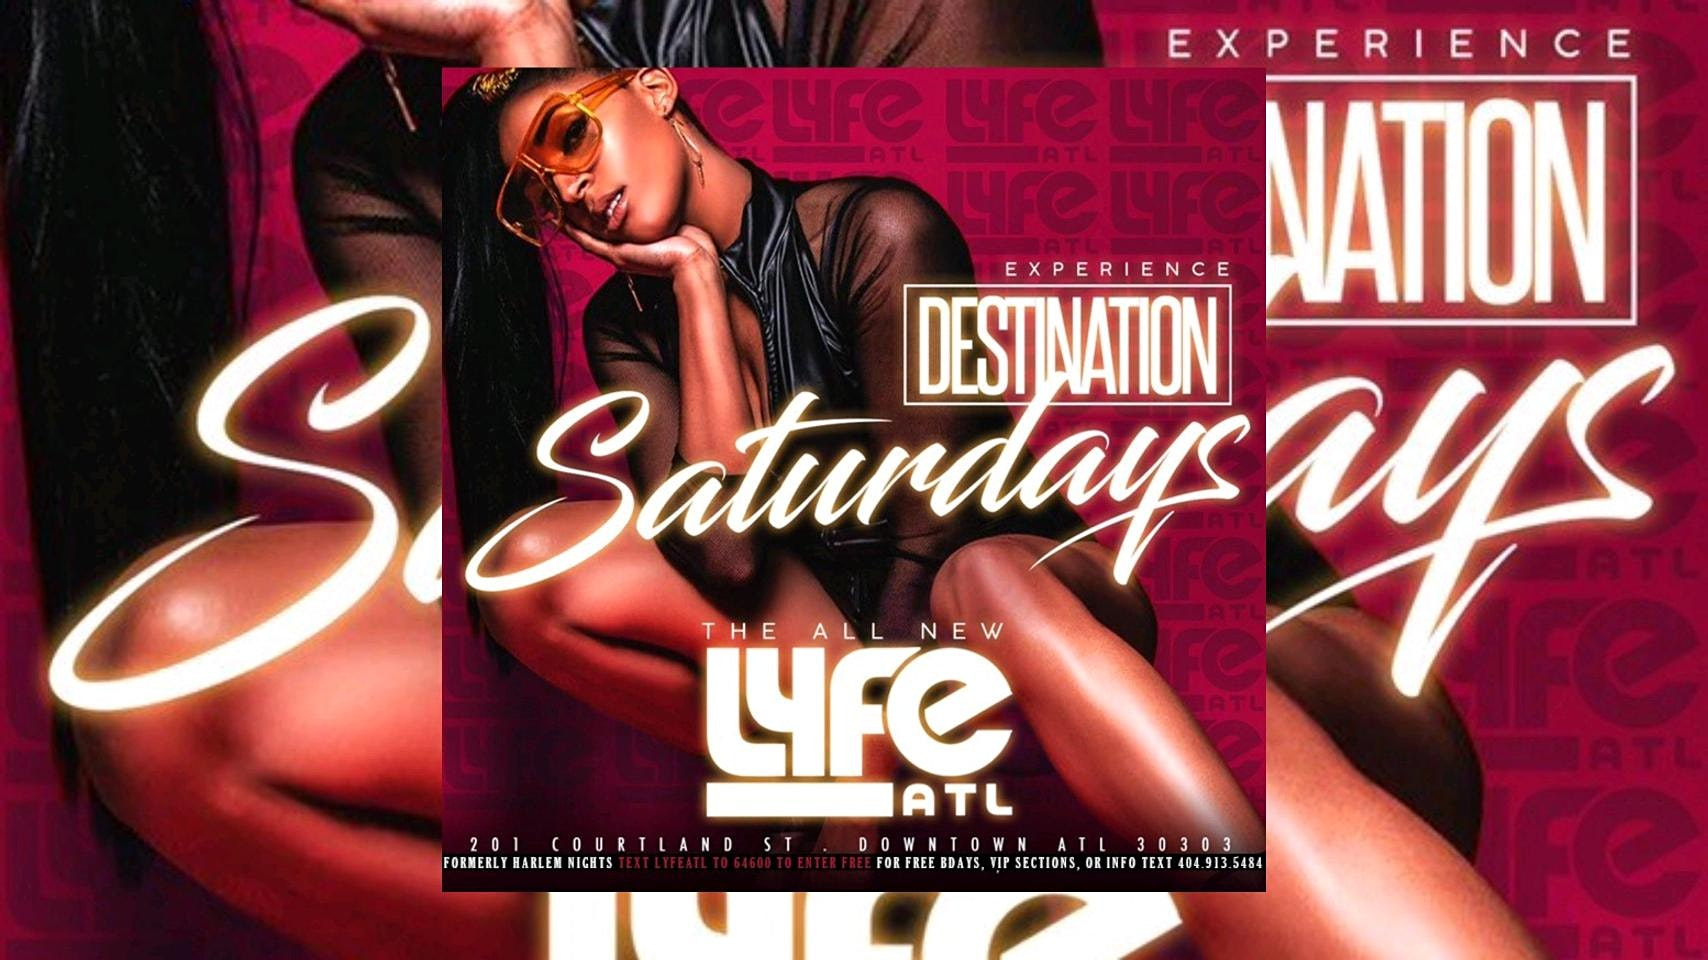 LYFE ATL: #DestinationSaturdays FREE Entry with RSVP   FREE Bday Packages